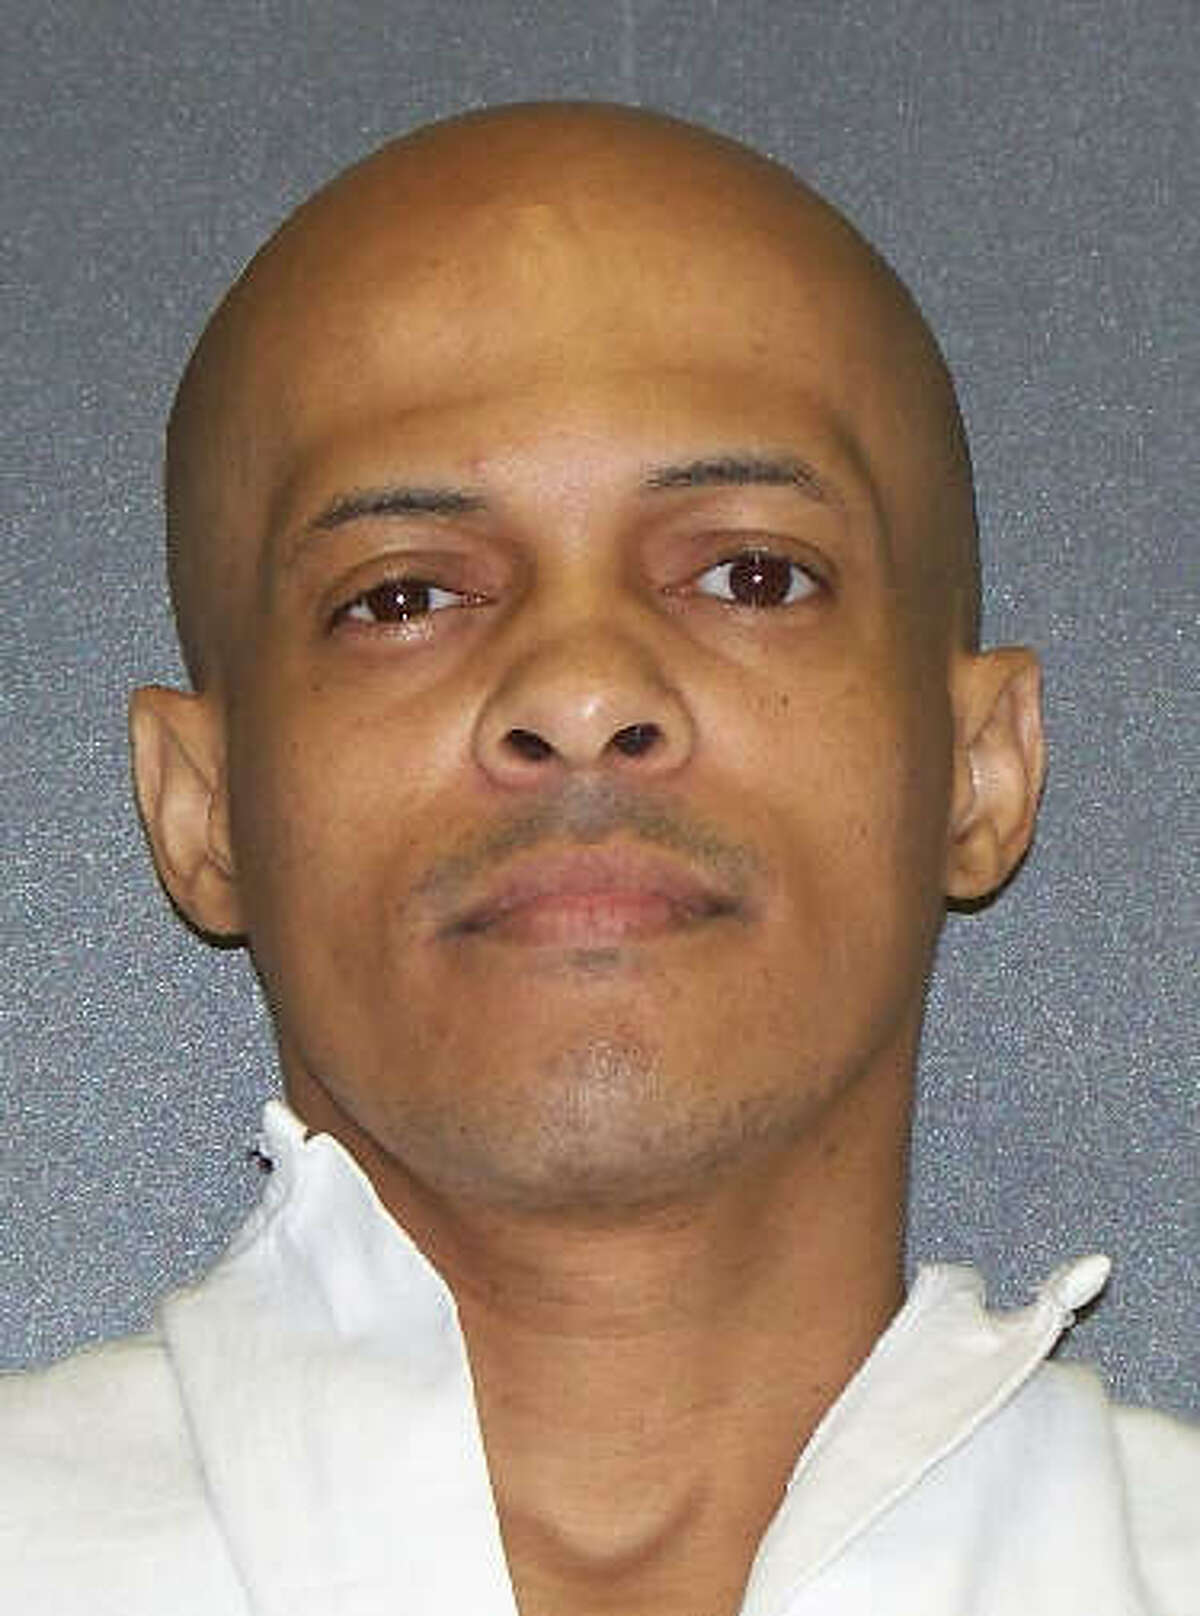 Death row inmate Robert James Campbell will be removed from the list of execution eligible inmates because of a low IQ. Harris County District Attorney Kim Ogg says she'll fight to keep Campbell in prison. Scroll through the gallery to see the longest-serving inmates on death row in Texas